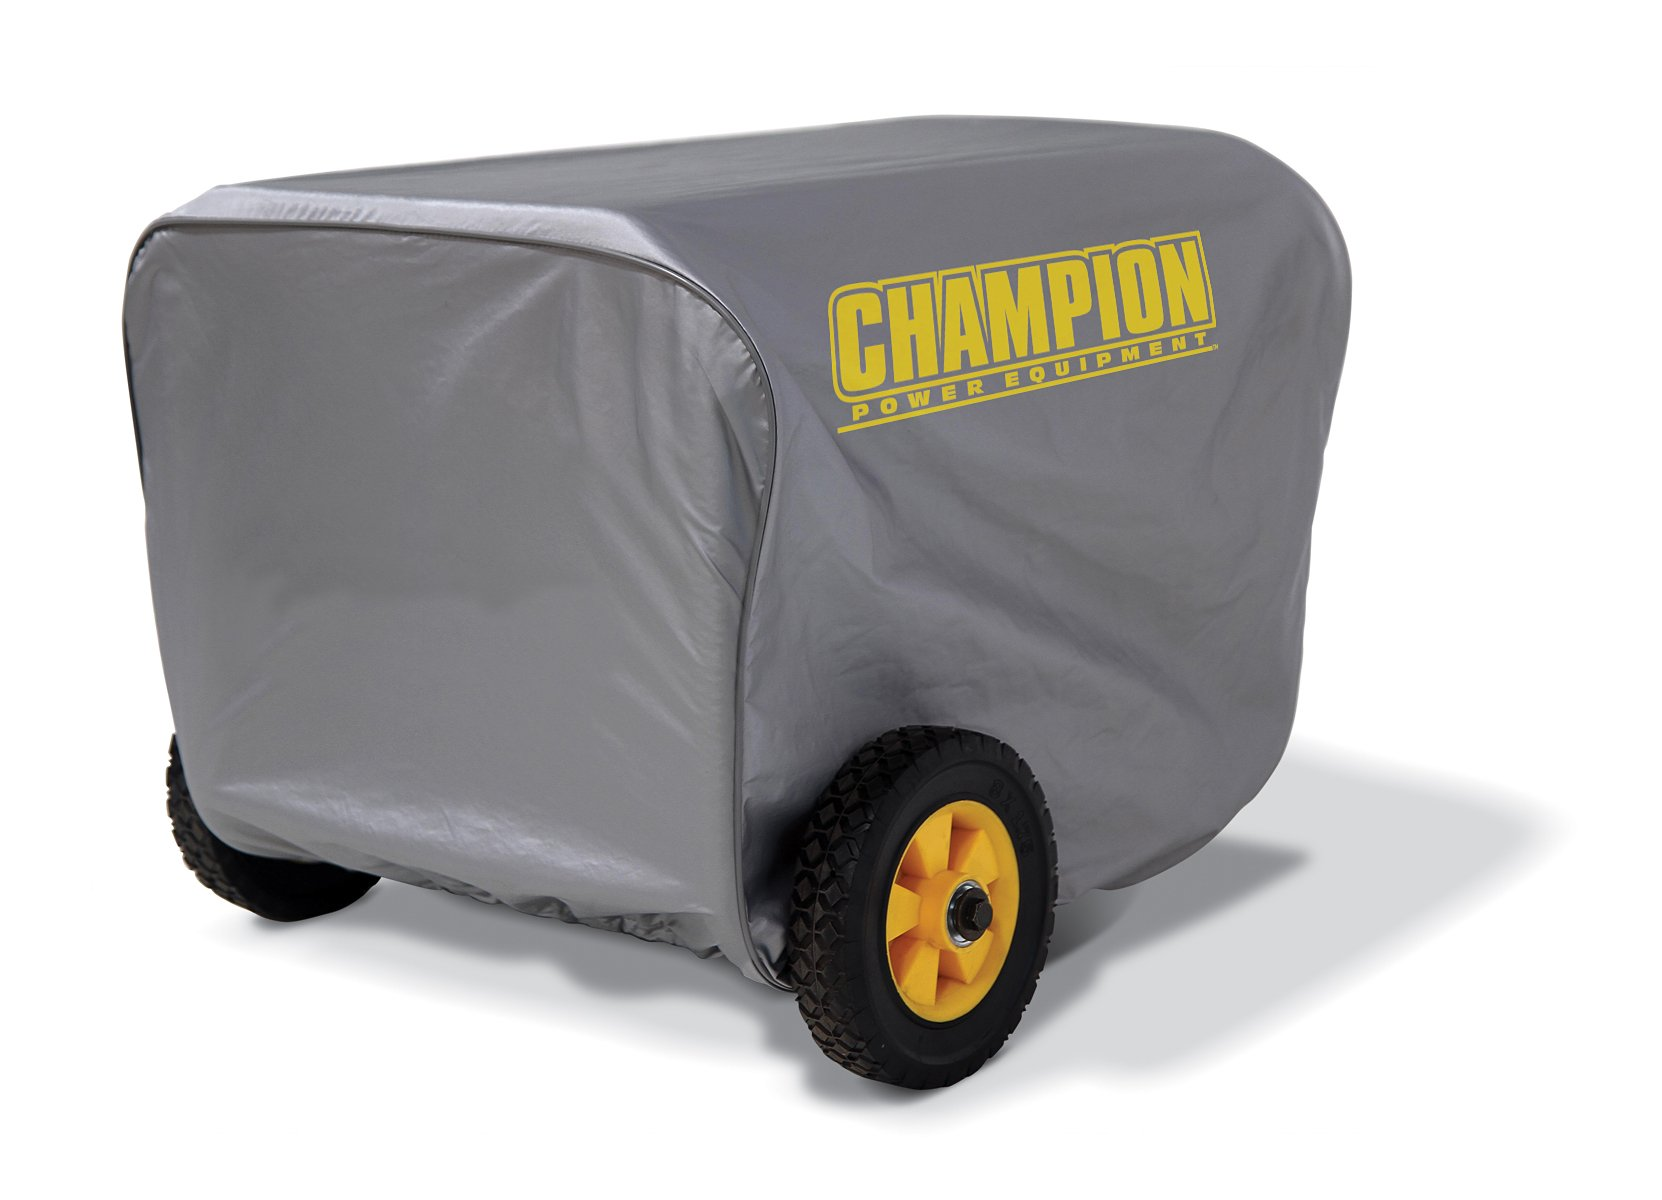 Champion Power Equipment No.C90011 Generator Cover for Champion 3000W-4000W Models product image